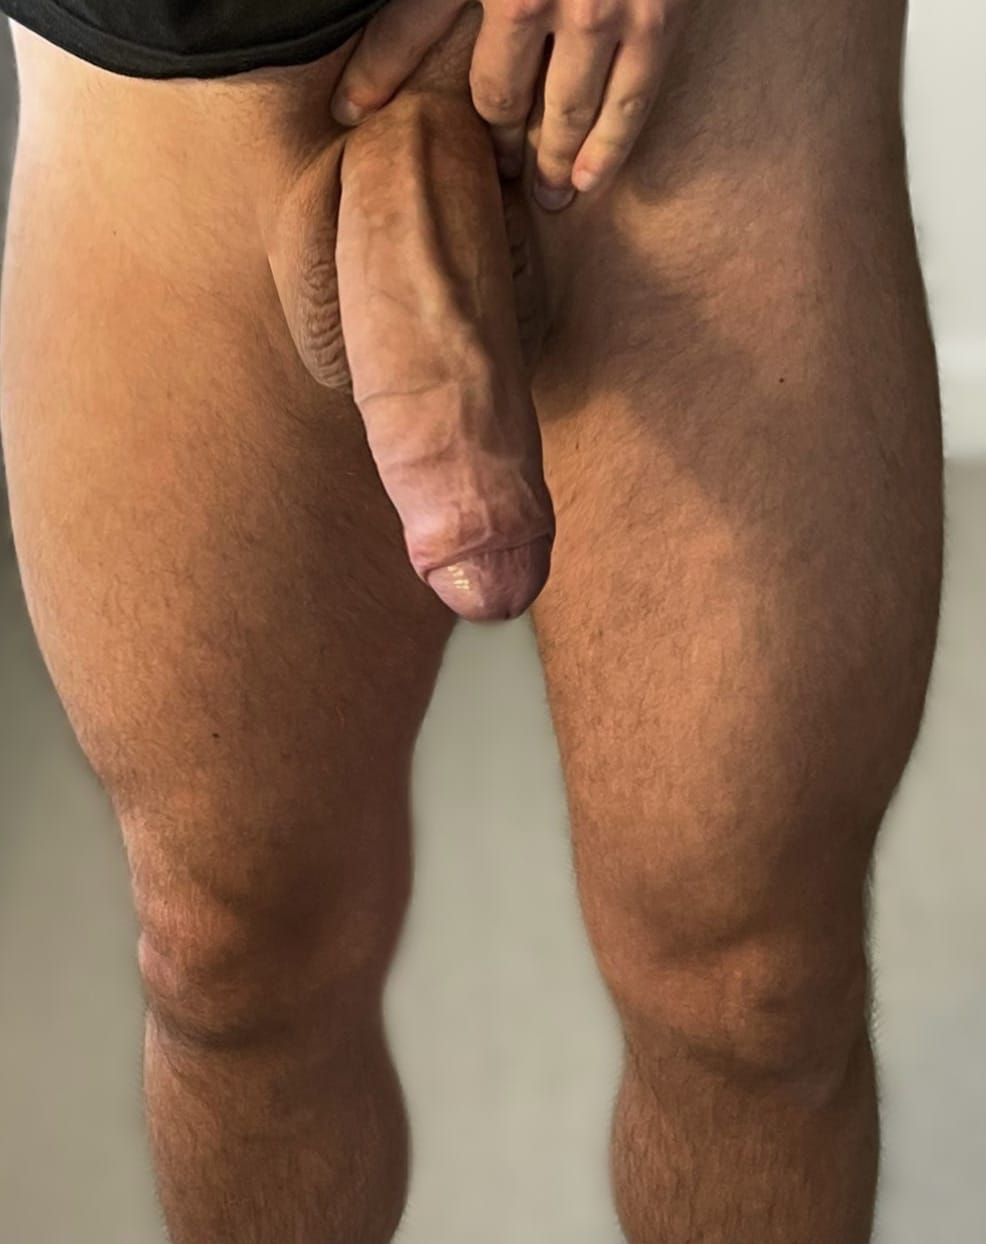 Muscular tighs and a big dick